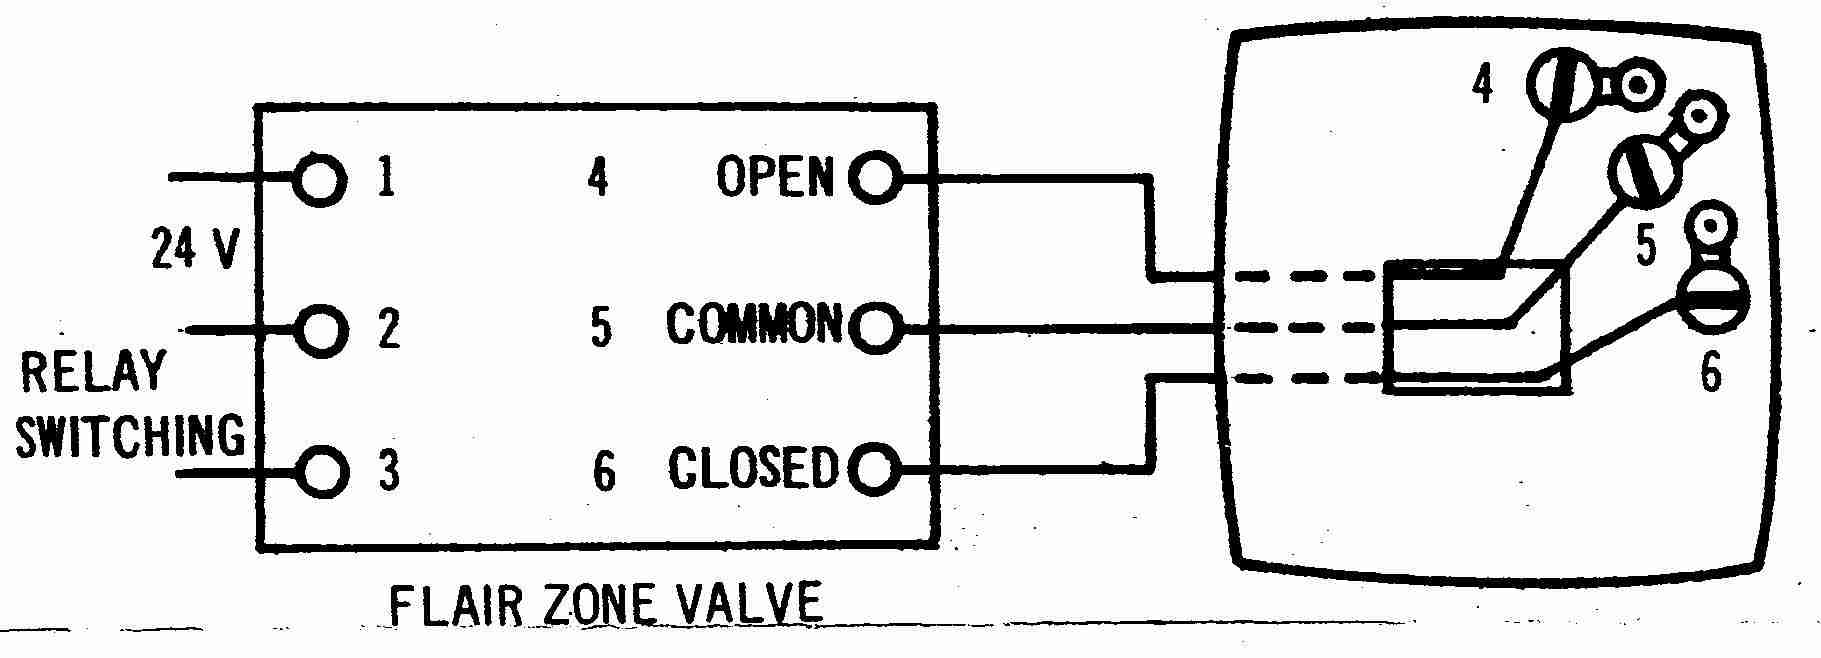 zone valve wiring installation instructions guide to heating rh inspectapedia com Taco Zone Control Panel Boiler Zone Valve Wiring Diagram